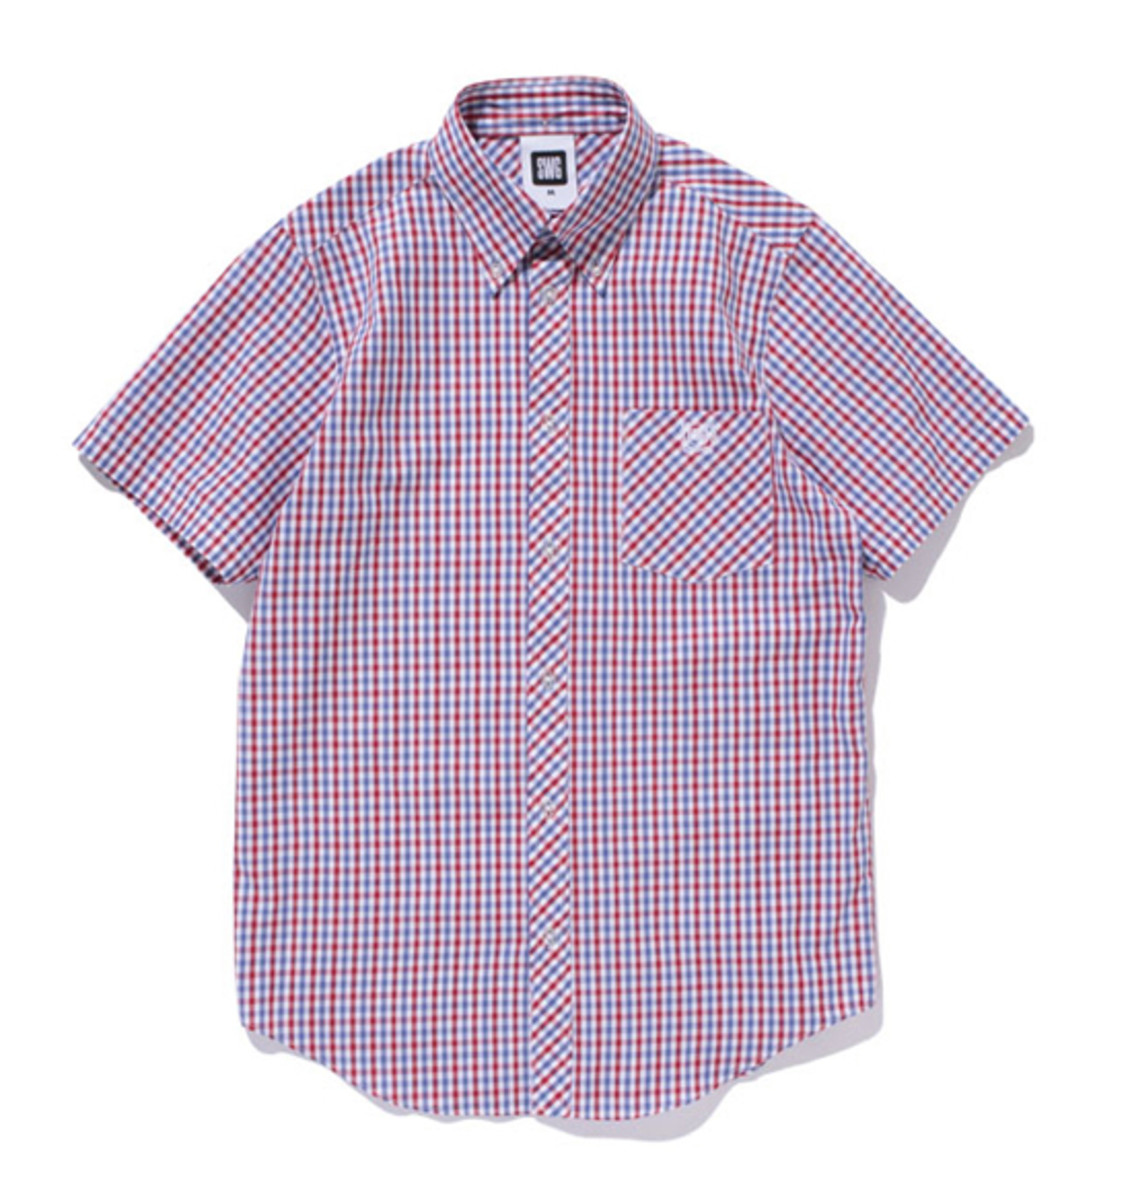 Gingham Check BD SS Shirt Red